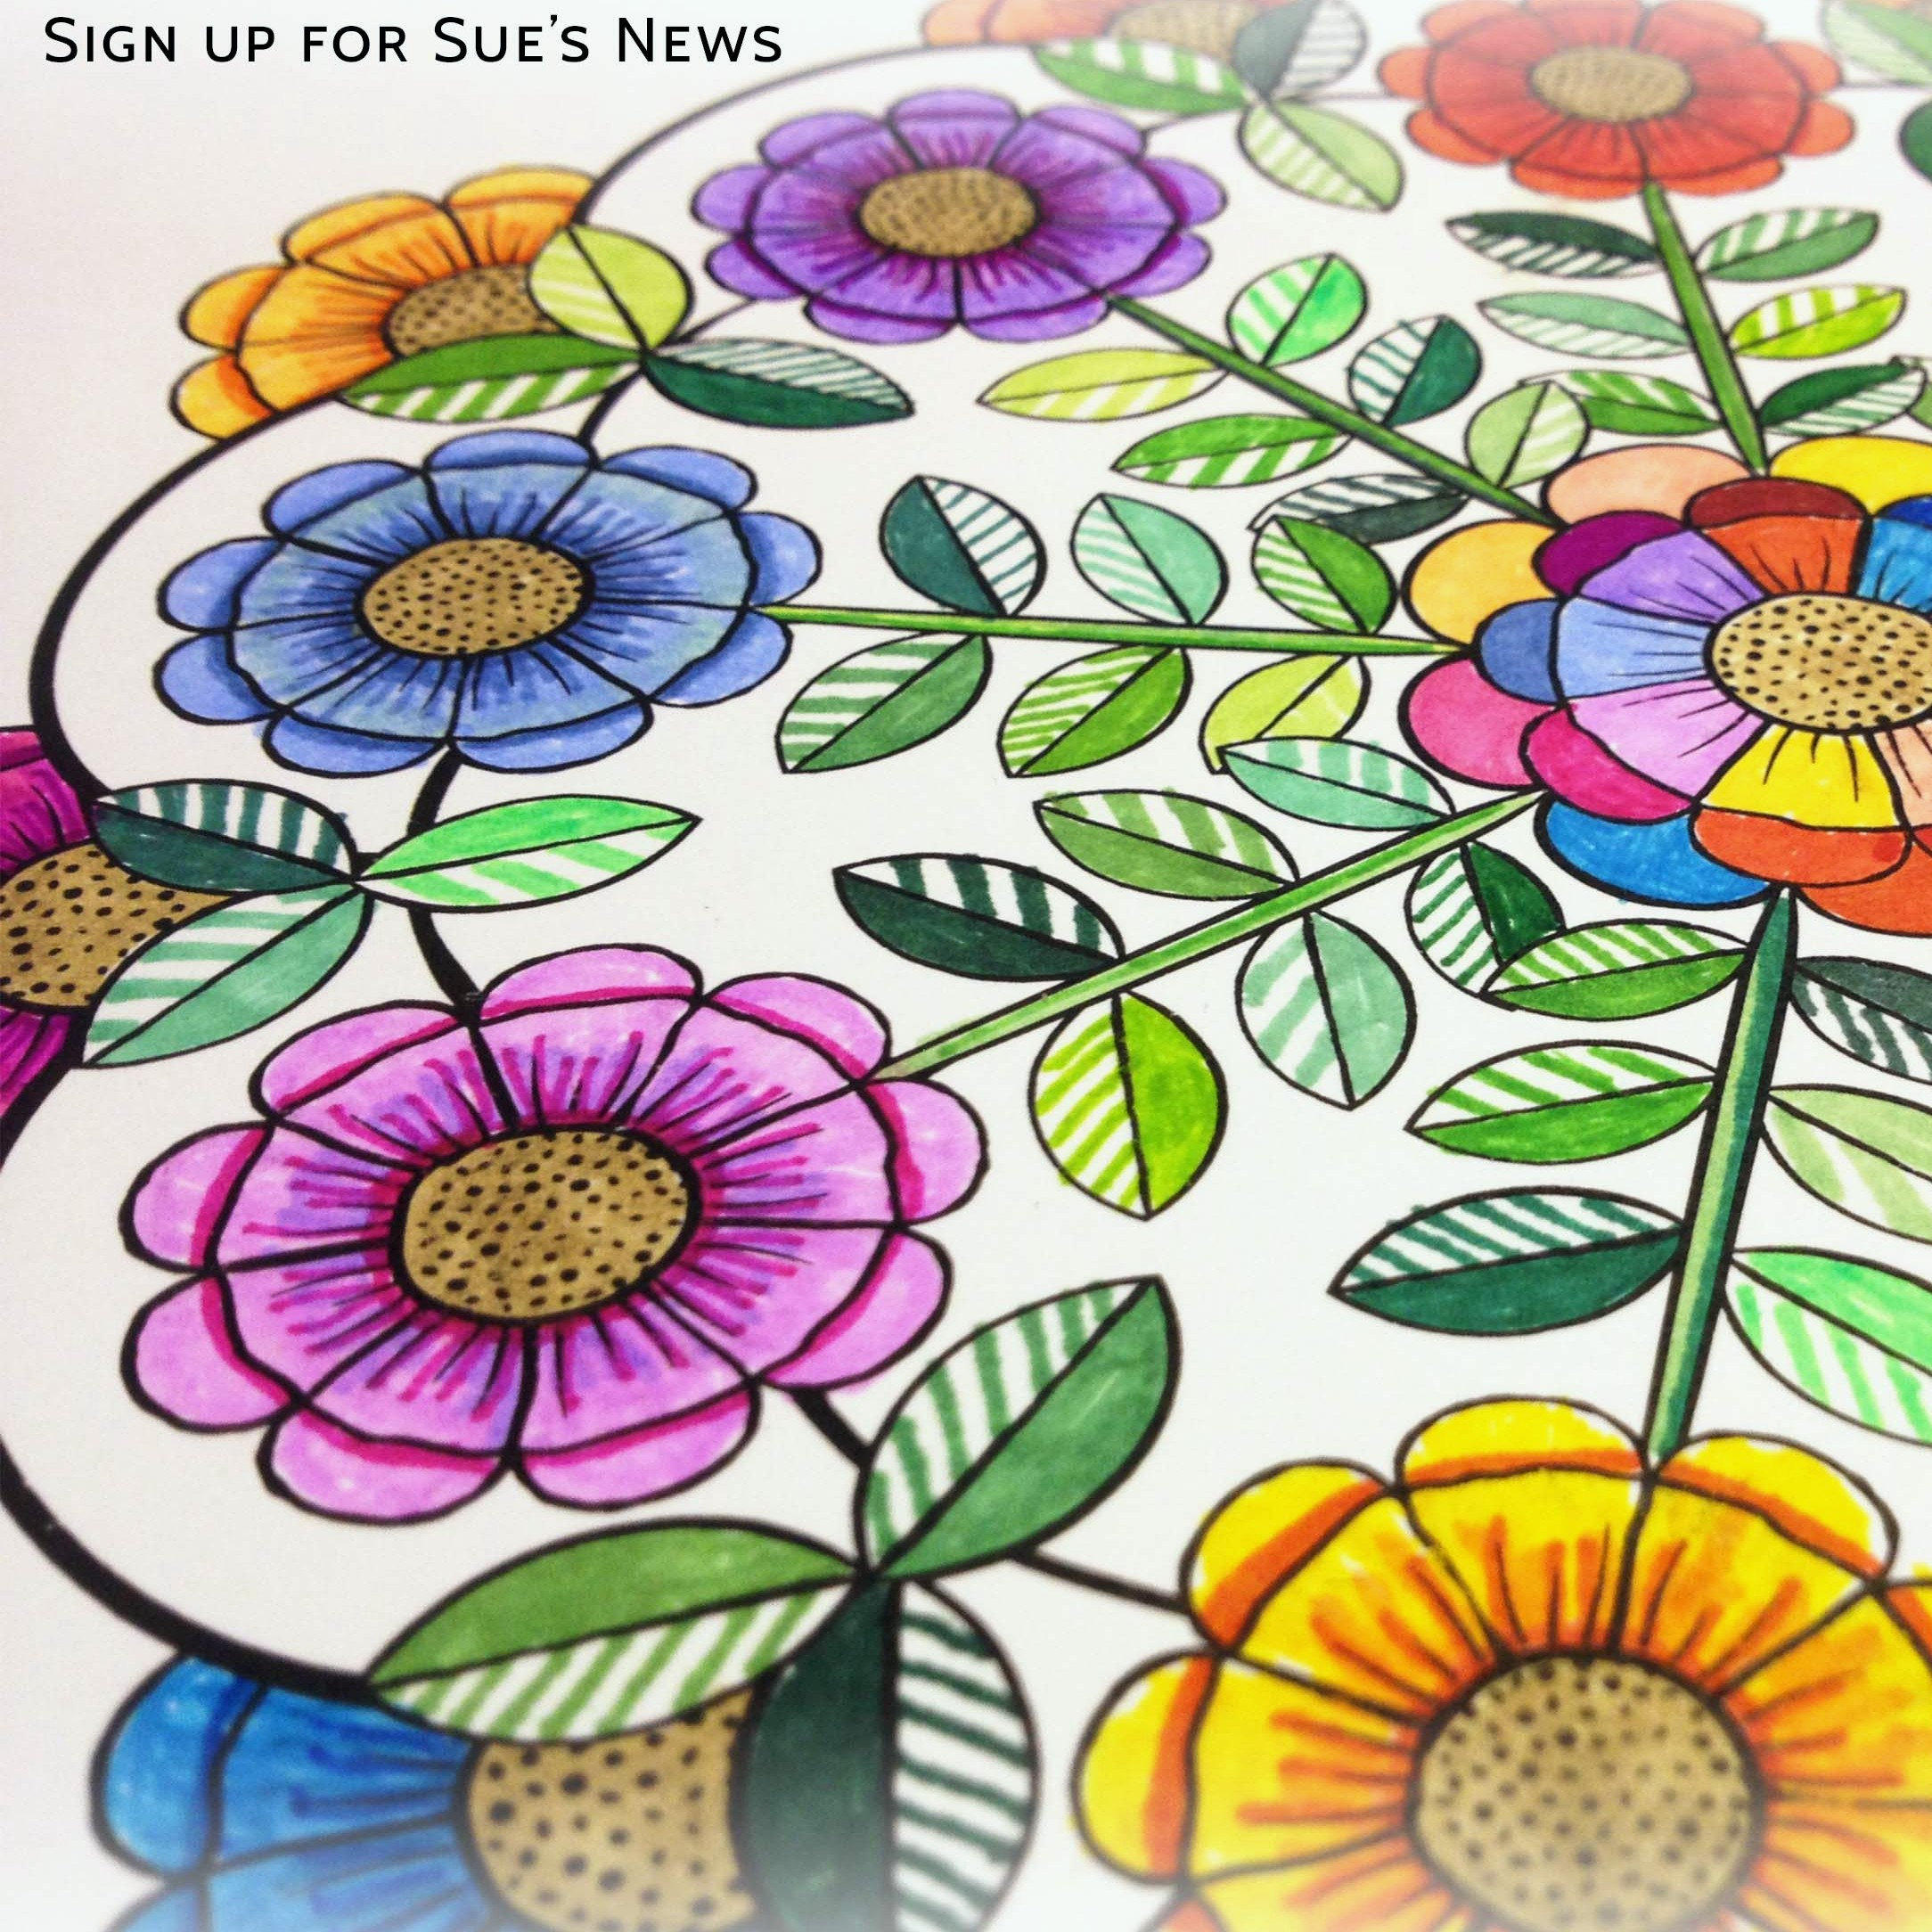 Bloomandala Free coloring page for subscribers of Sue's News.